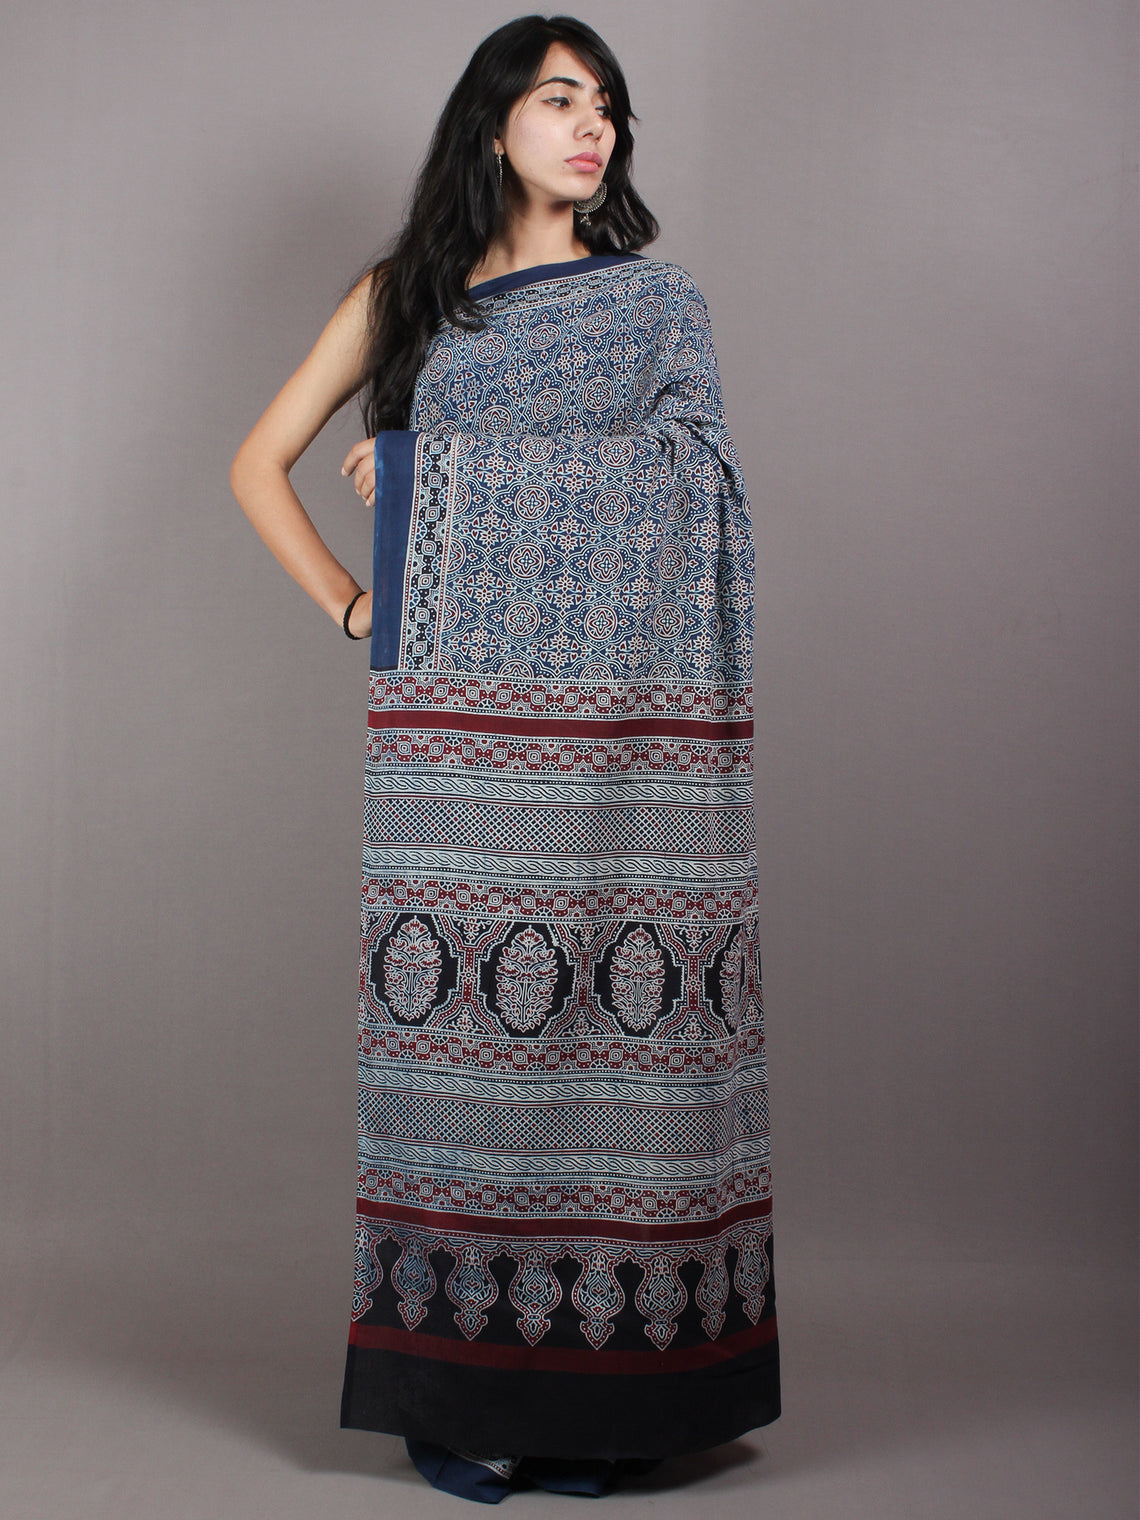 Indigo Beige Cherry Mughal Nakashi Ajrakh Hand Block Printed in Natural Vegetable Colors Cotton Mul Saree - S03170594